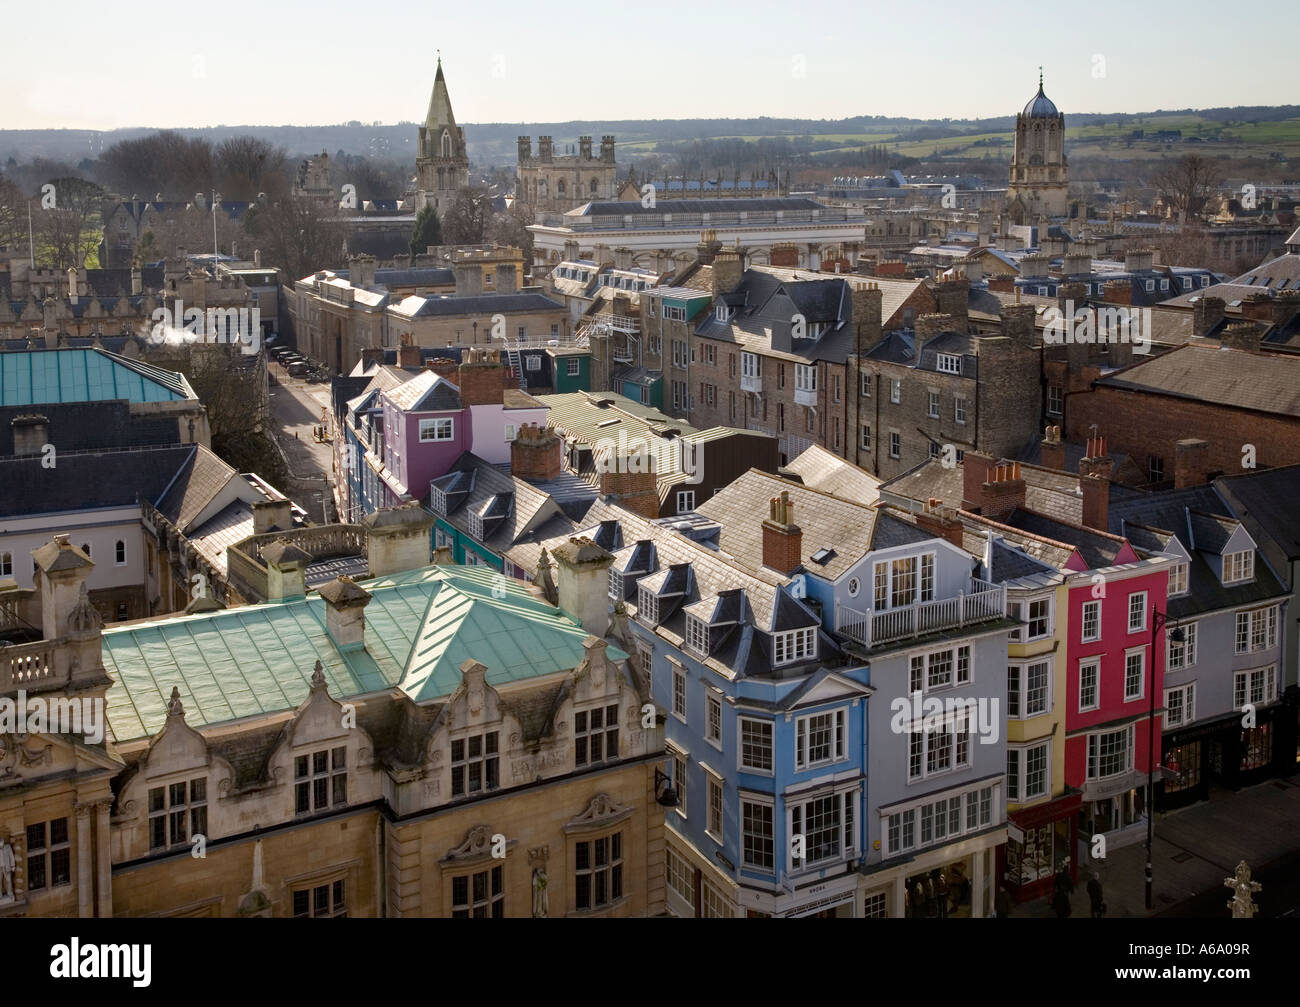 Looking South from St Mary the Virgin, to Corpus Christi College and the Tom Tower on the right. Oxford, England, - Stock Image